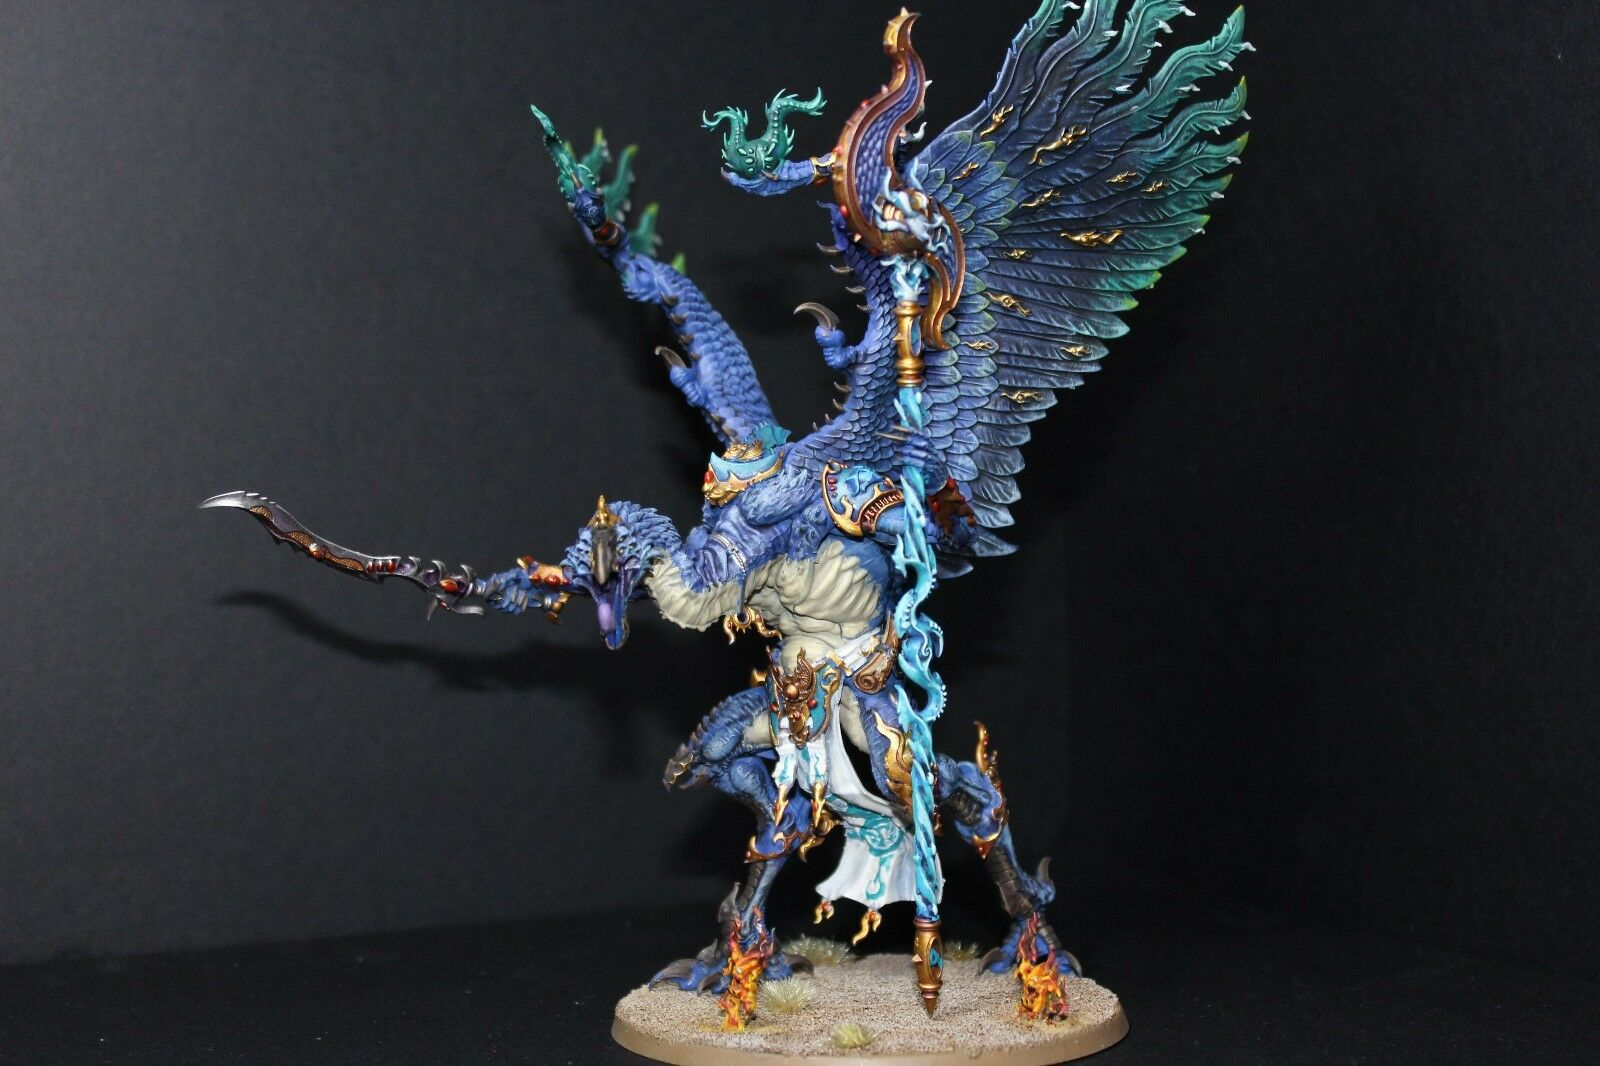 Warhammer 40k & AoS pro painted Lord of change greater demon  made to order